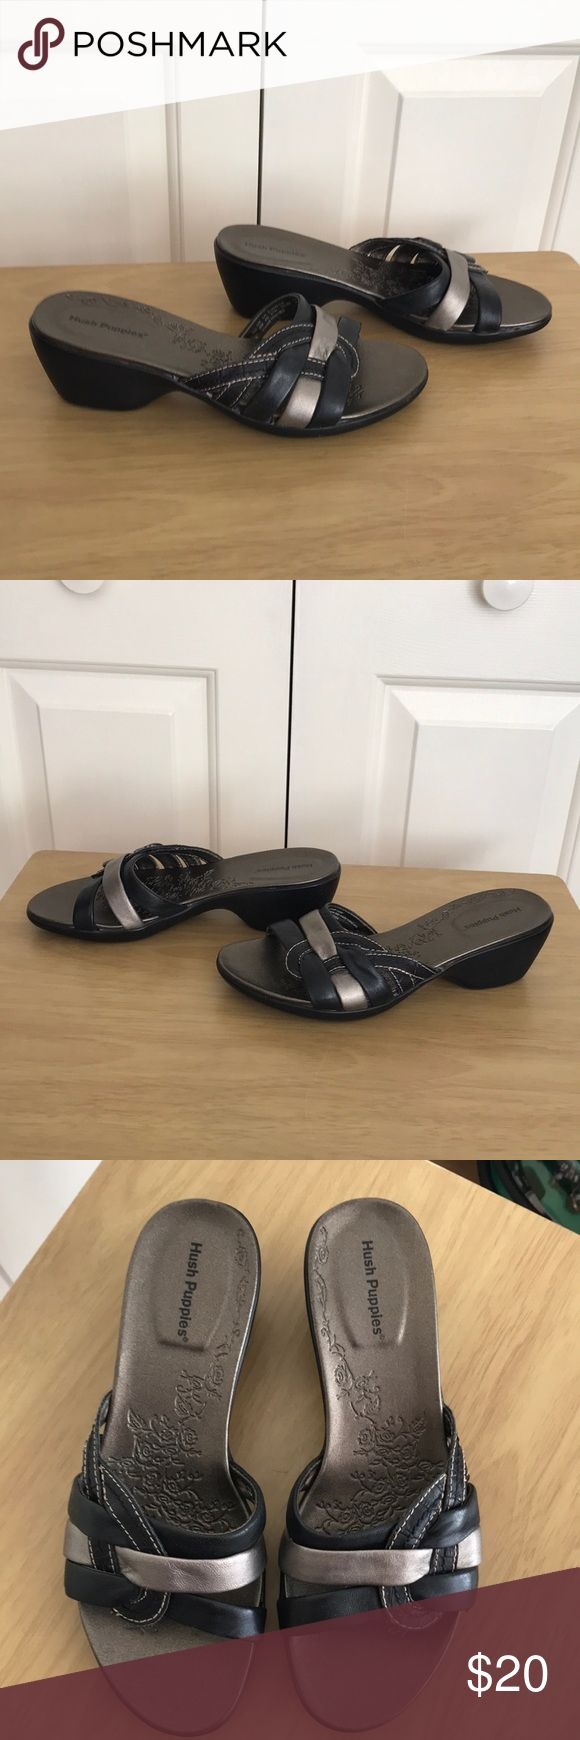 """Hush Puppies sandals Slip in leather sandals with 2"""" heels. Can be dressy or casual depending on the outfit. Gently used for one summer season from non smoking home. Bundle up with other items and save $$. Hush Puppies. Shoes Sandals"""